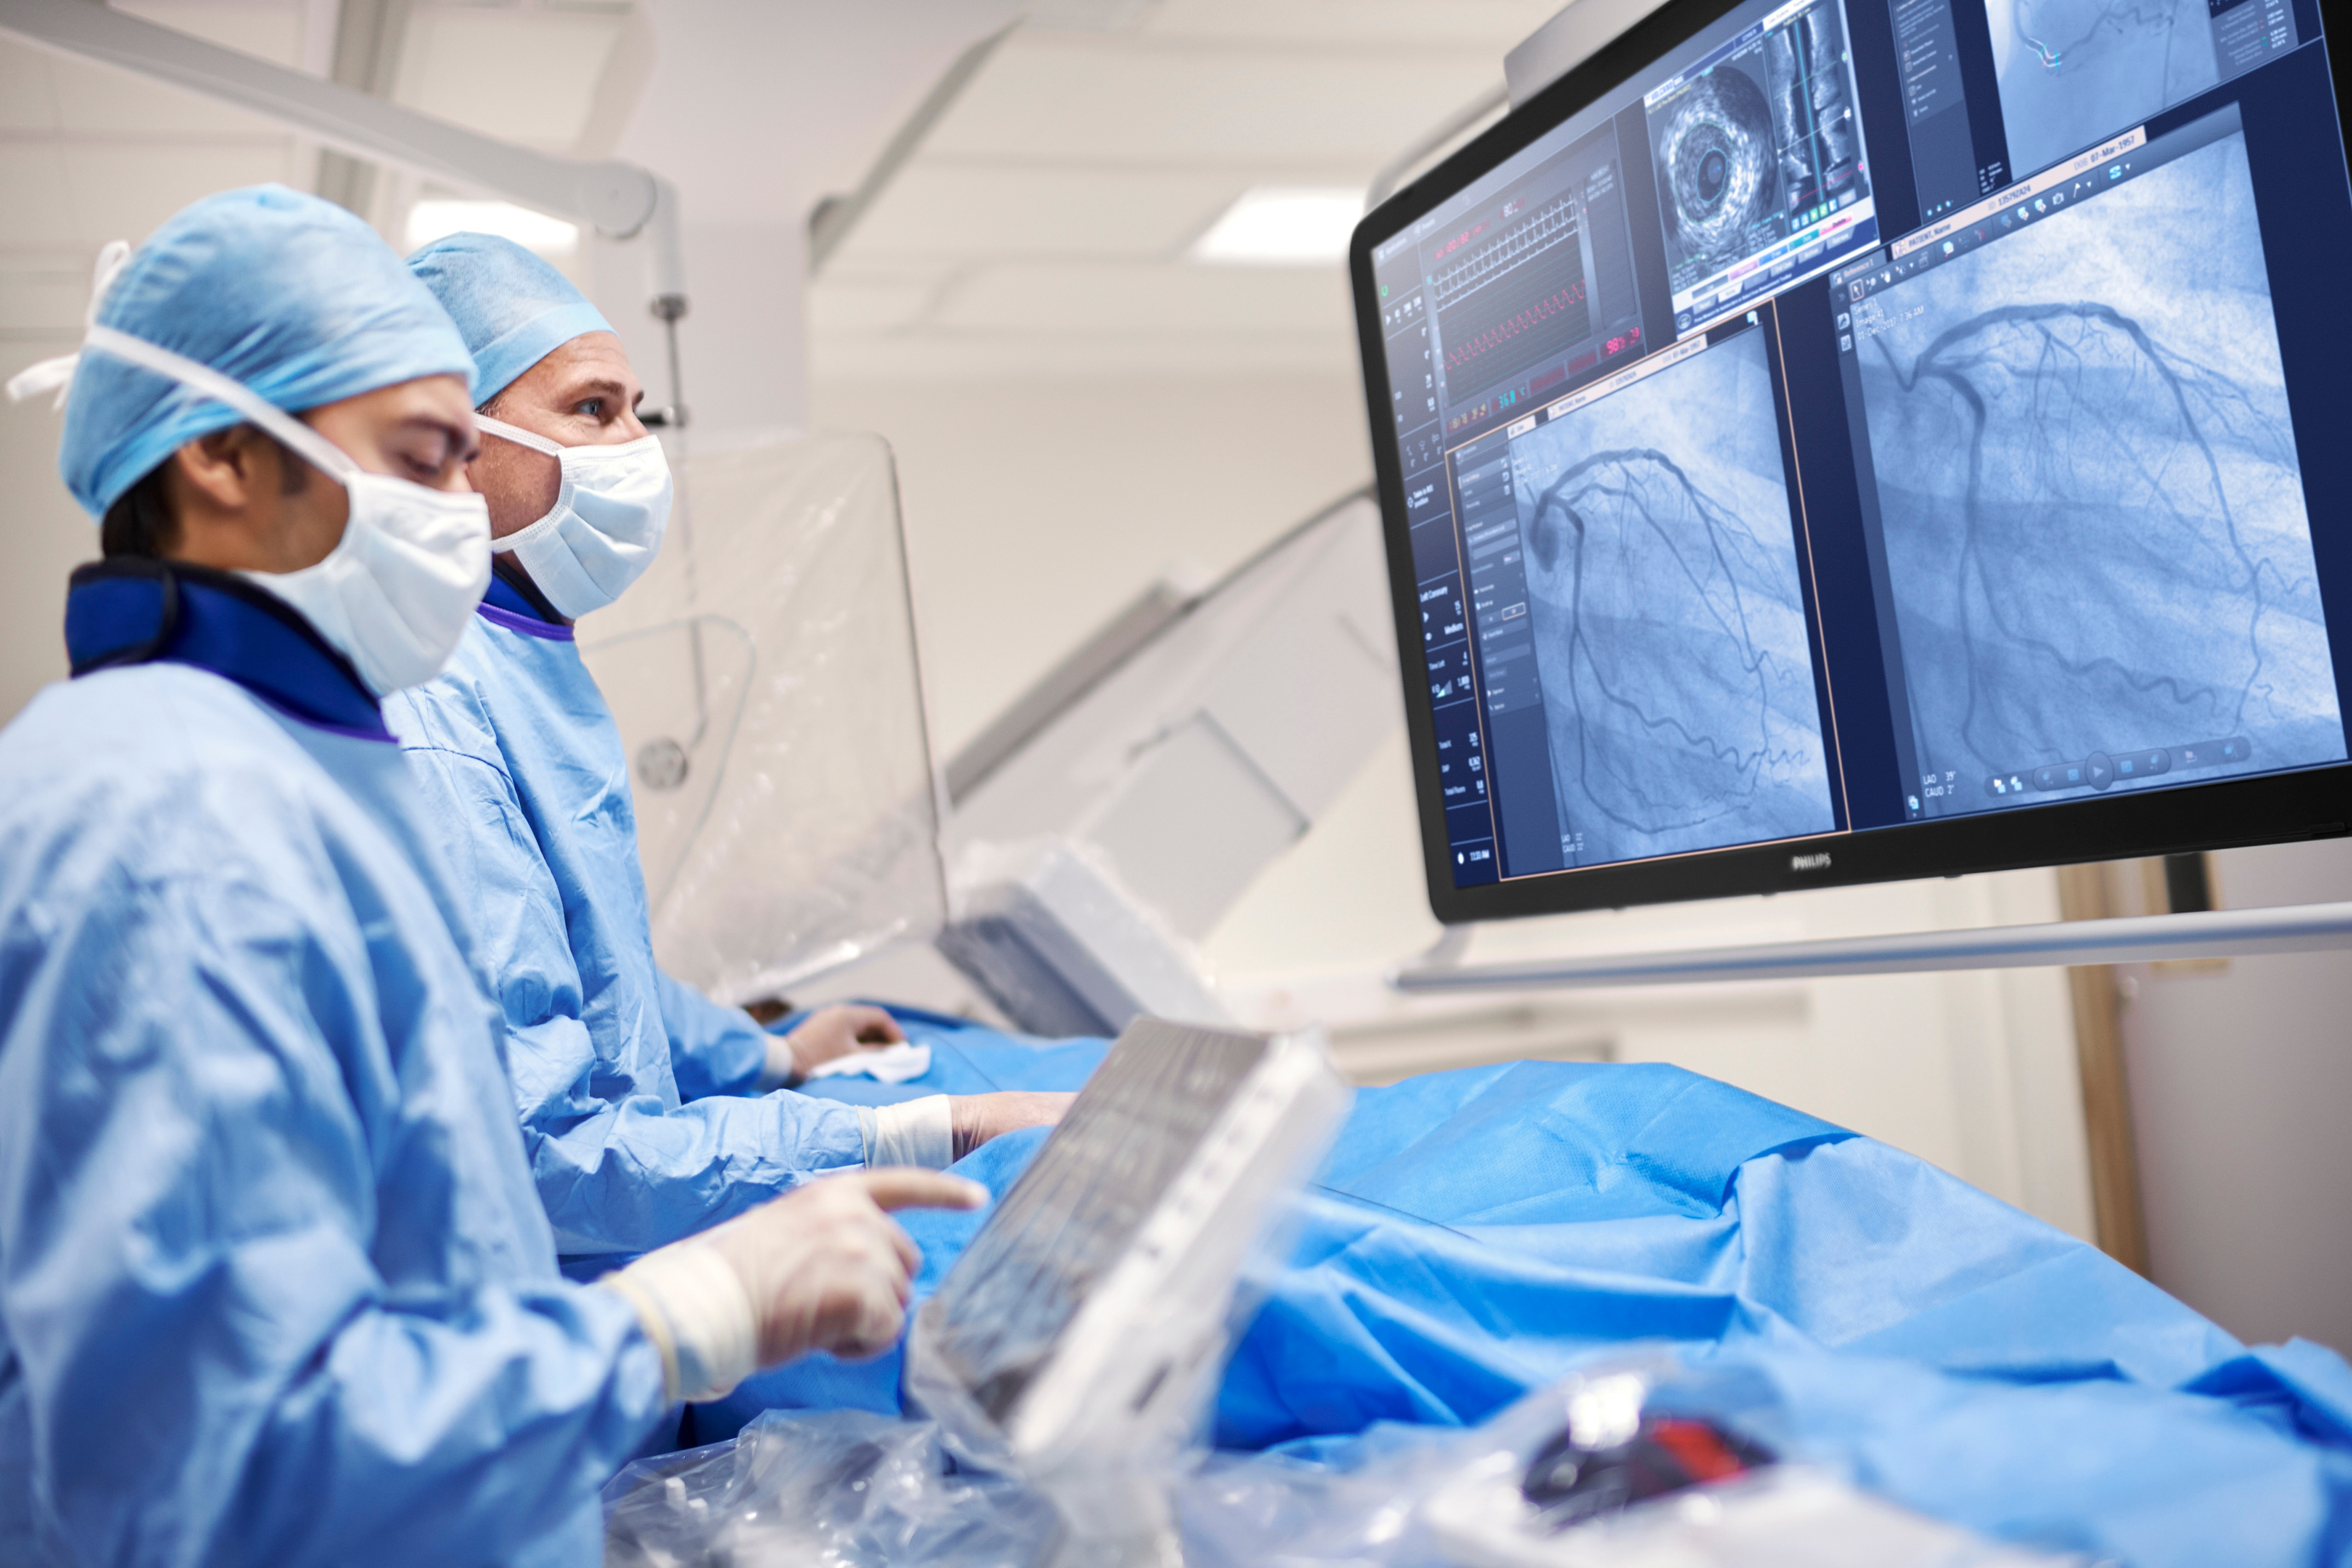 2017 – Philips Azurion offers a unique operating system that optimizes integration and an intuitive user interface that puts controls at the clinician's fingertips